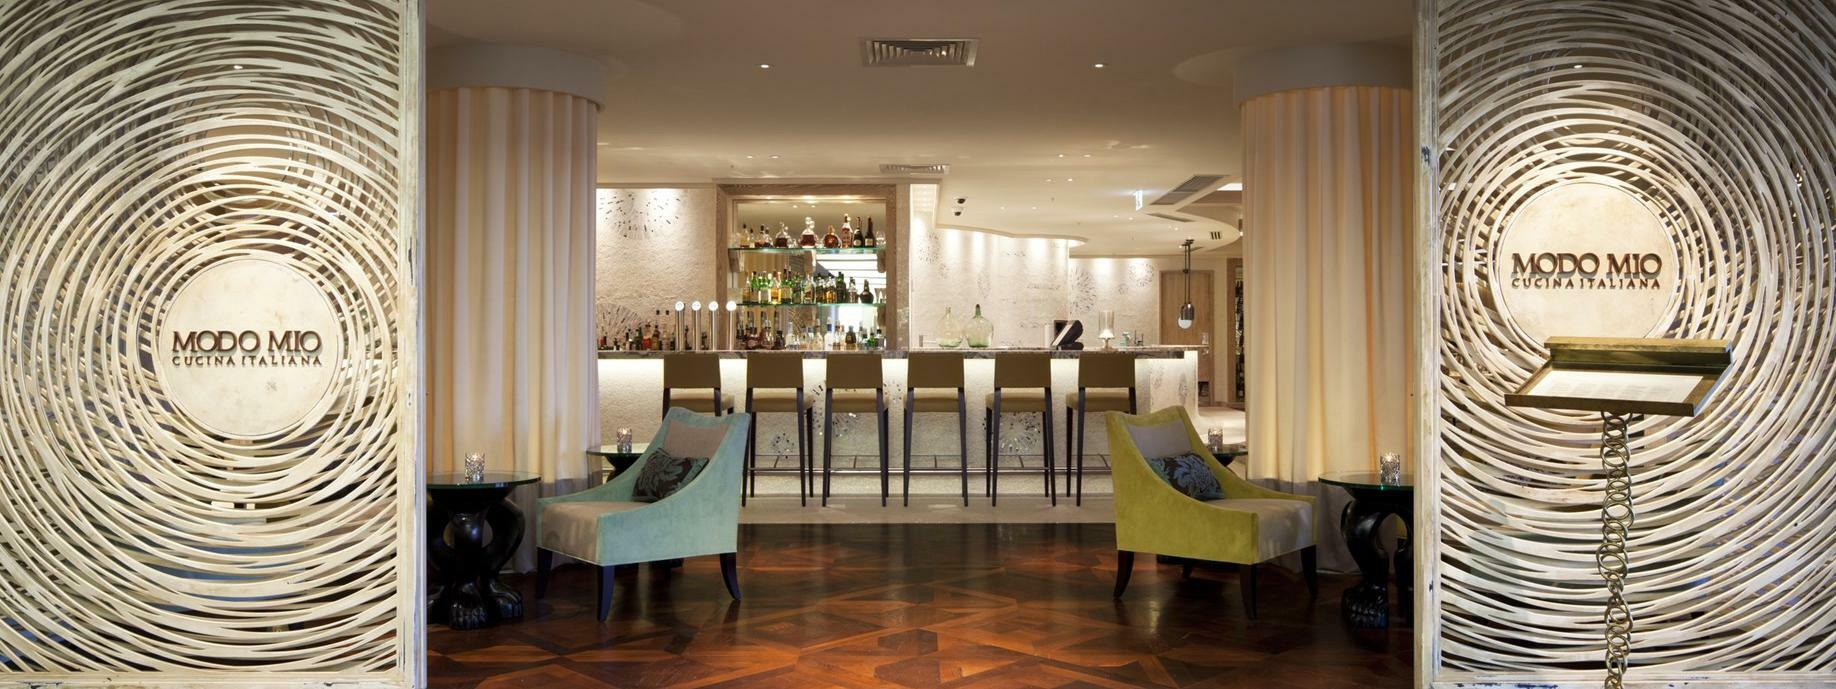 Modo Mio Meeting rooms at Crown Hotel Perth